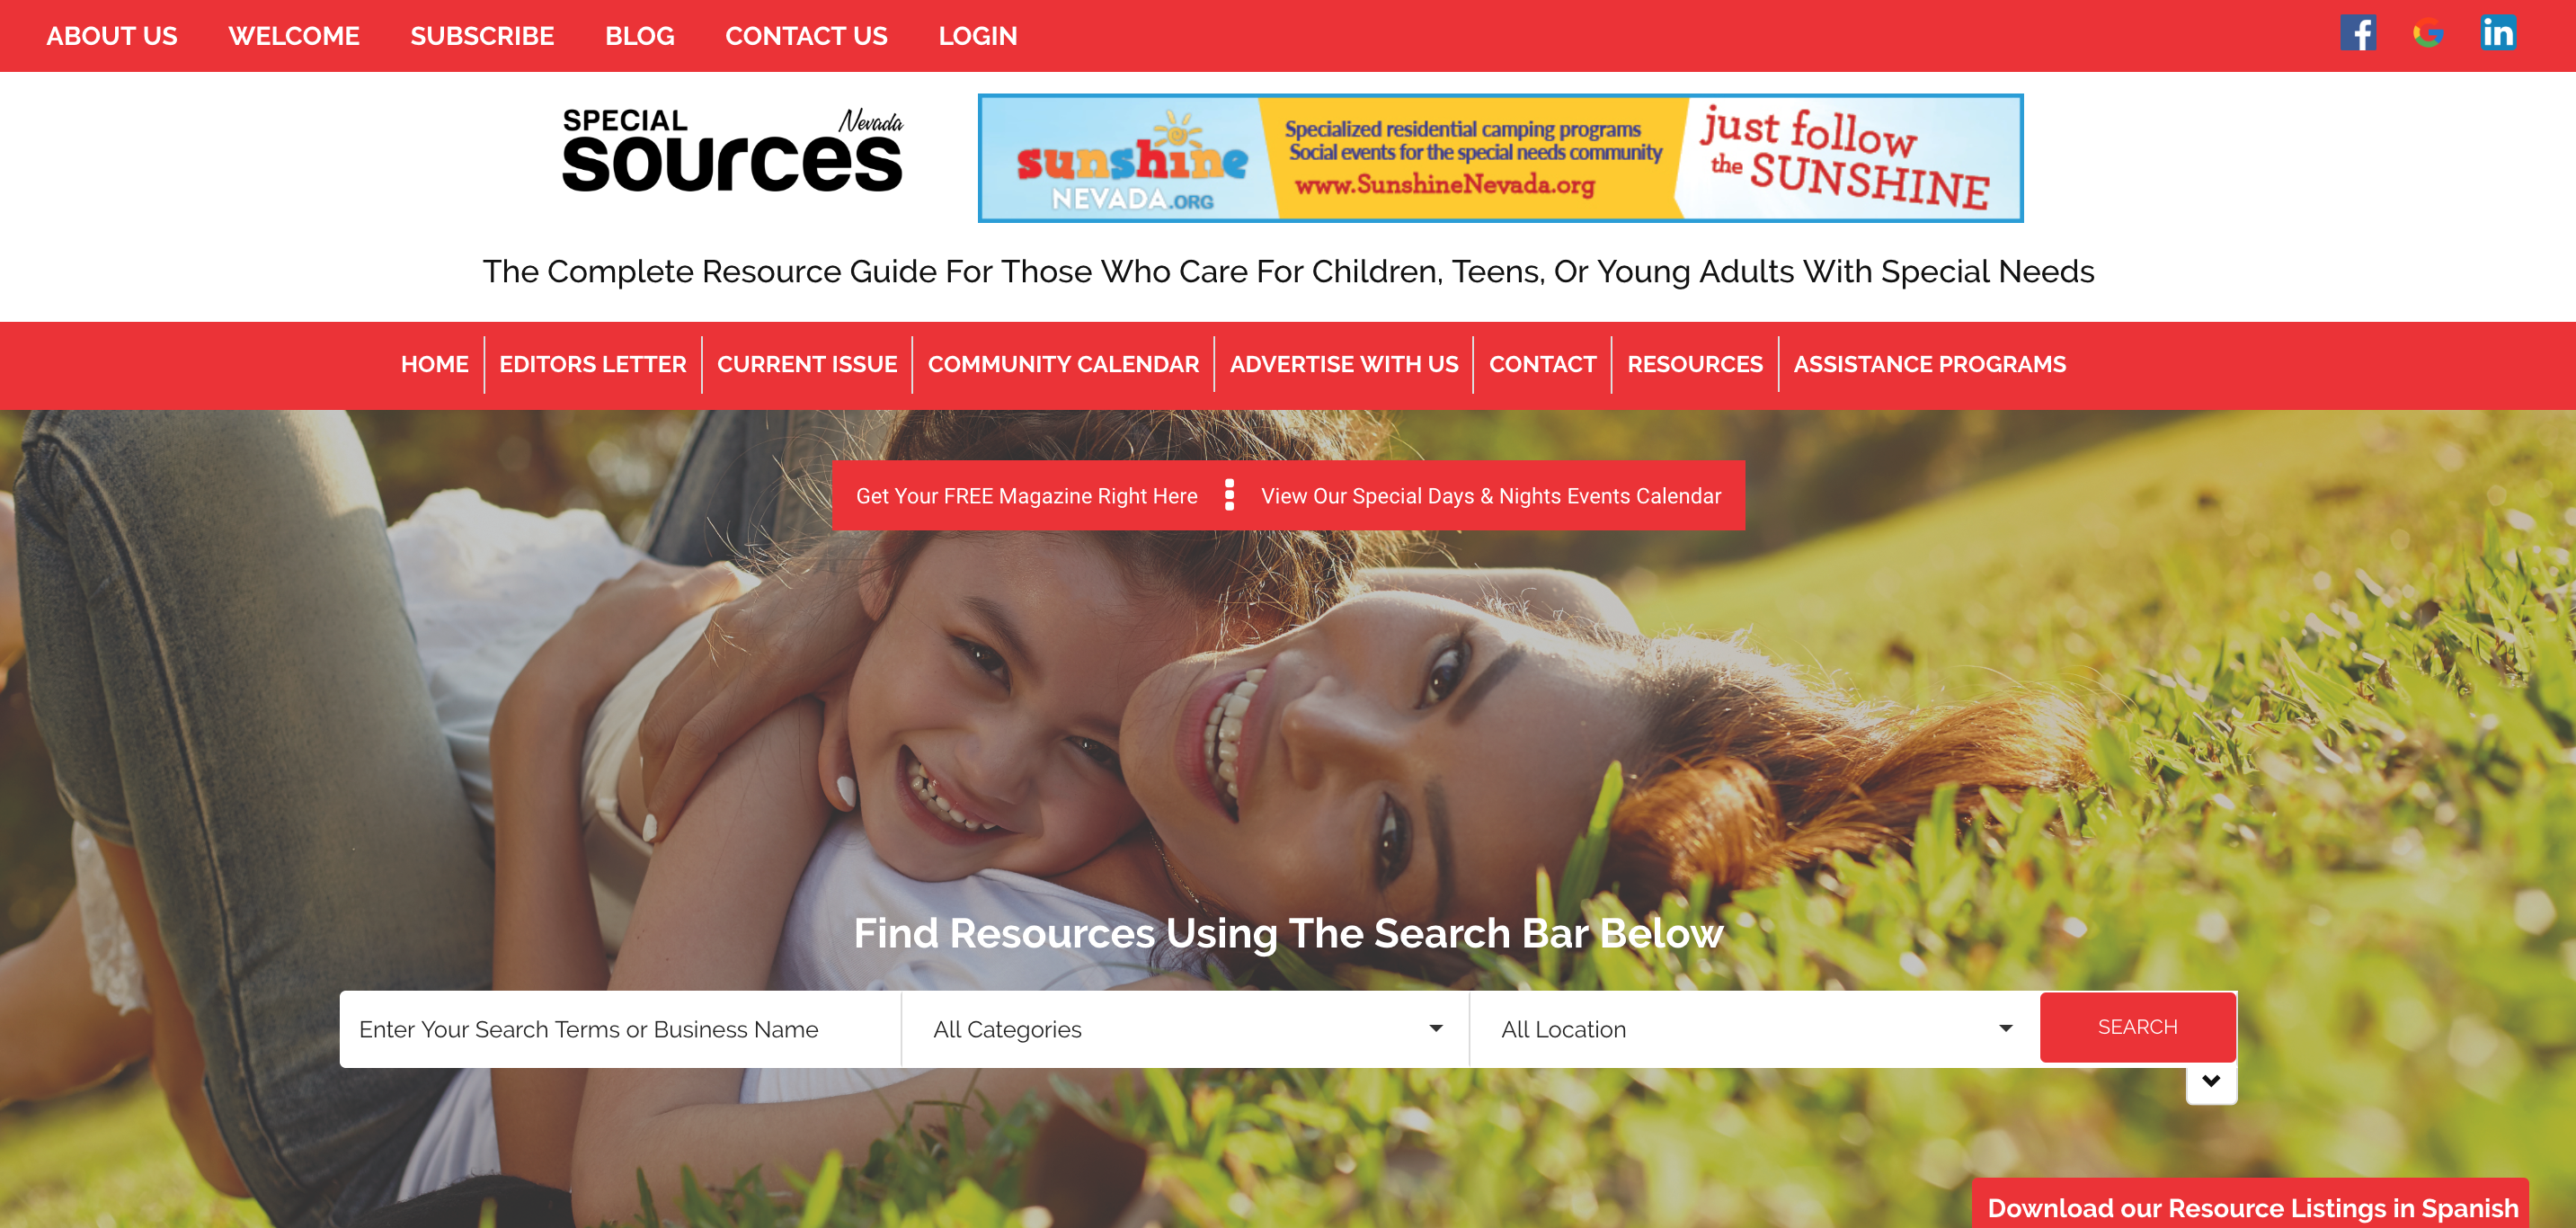 Special Sources Website Home Page